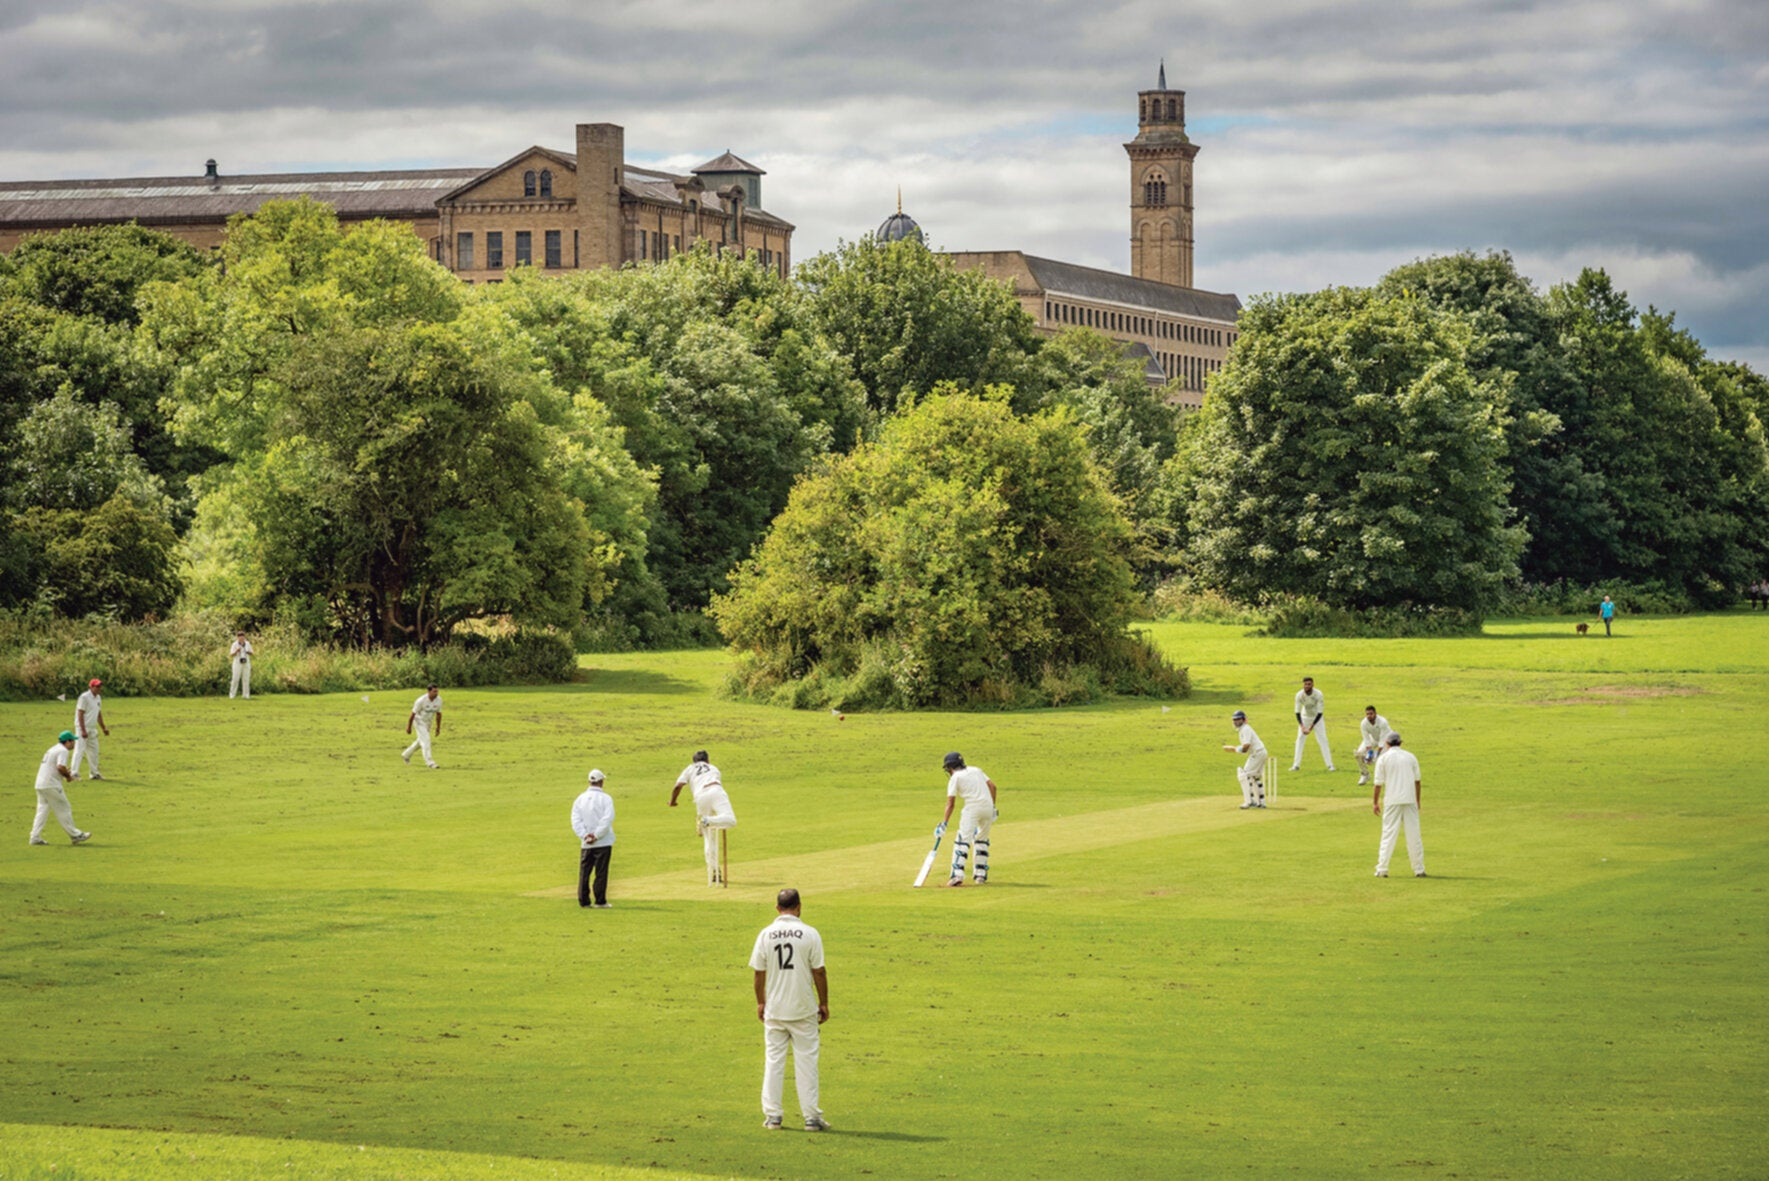 The joy of festival cricket, pastime of small towns